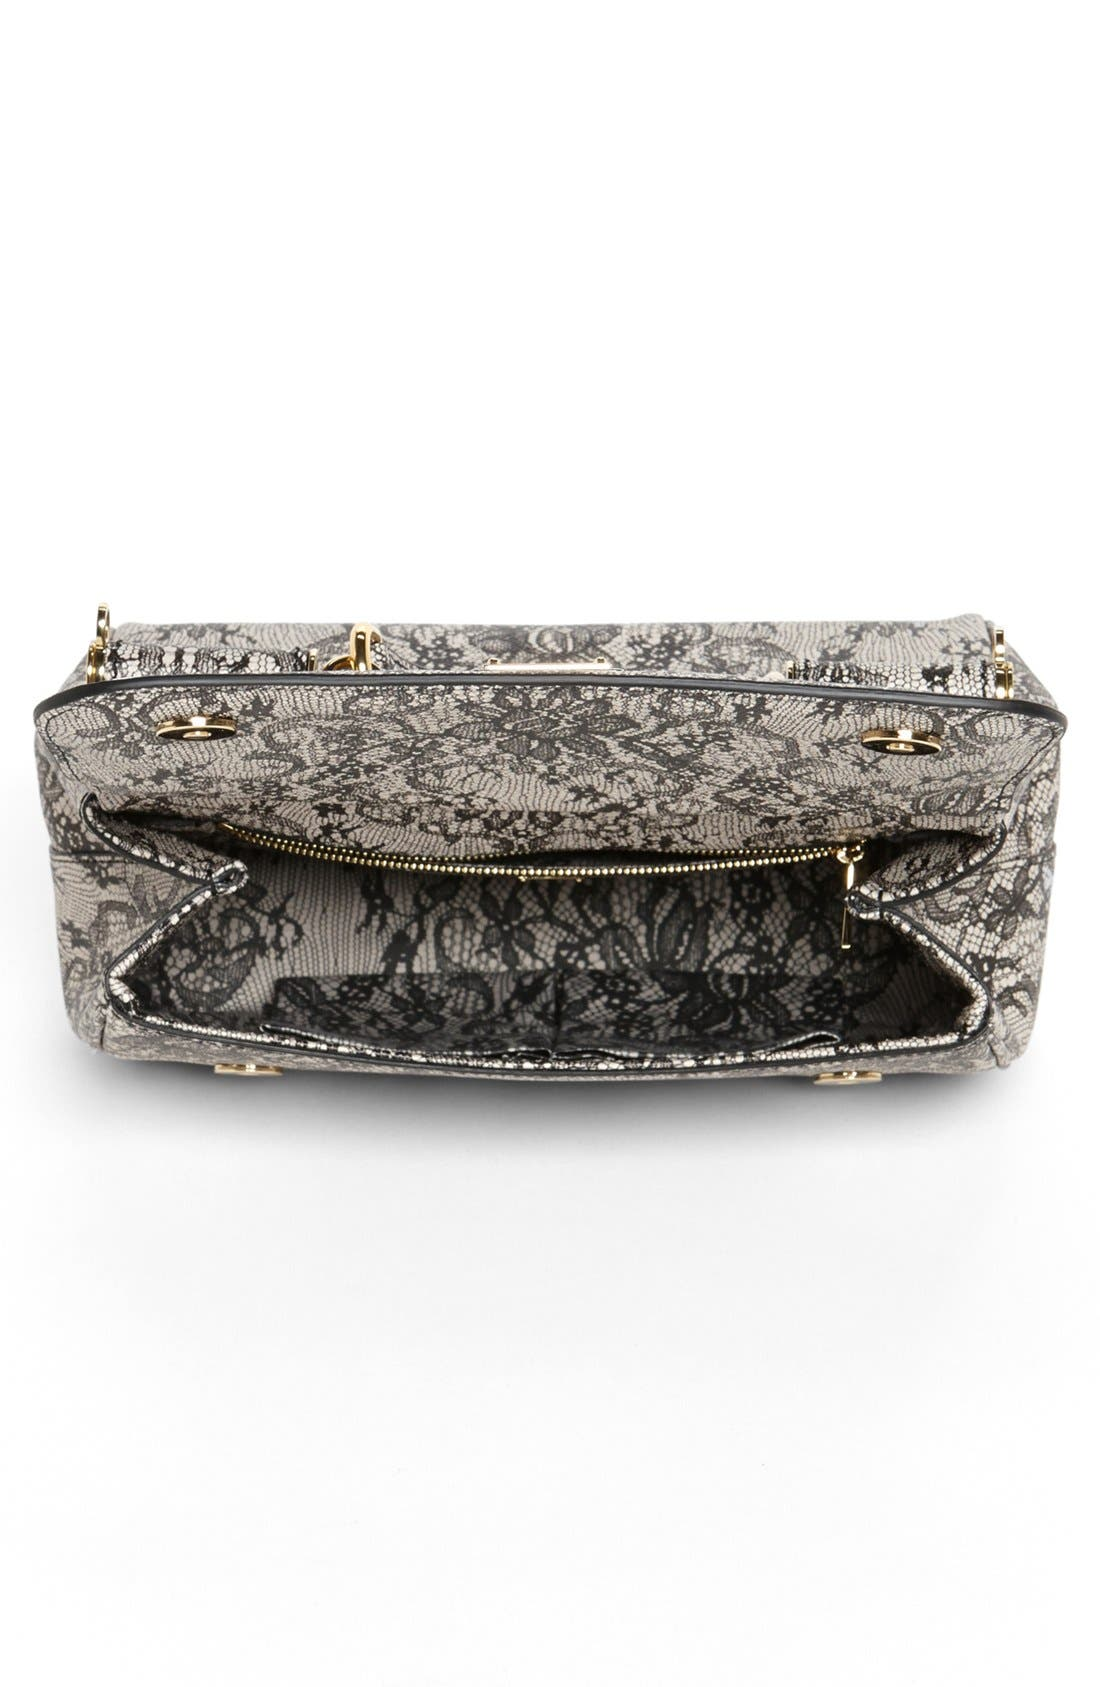 Alternate Image 3  - Dolce&Gabbana 'Miss Sicily - Printed Lace' Top Handle Leather Satchel, Small